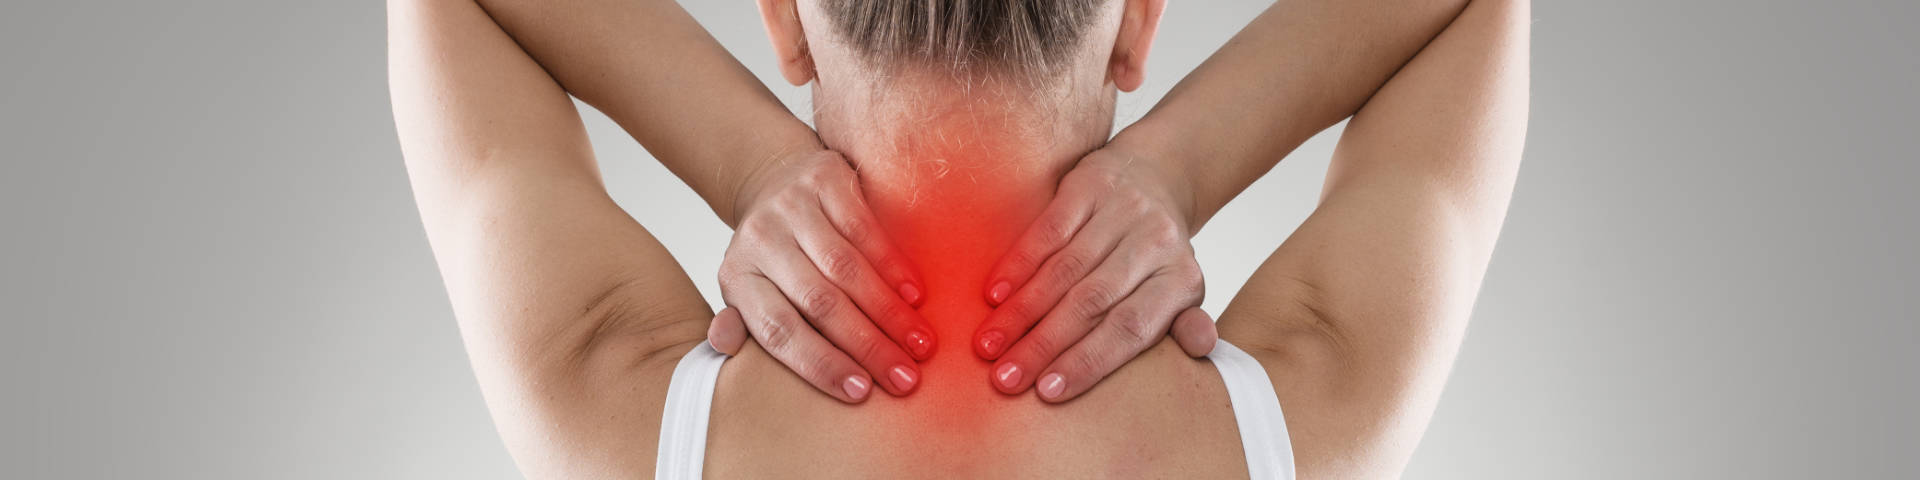 woman suffering from upper back and spine pain